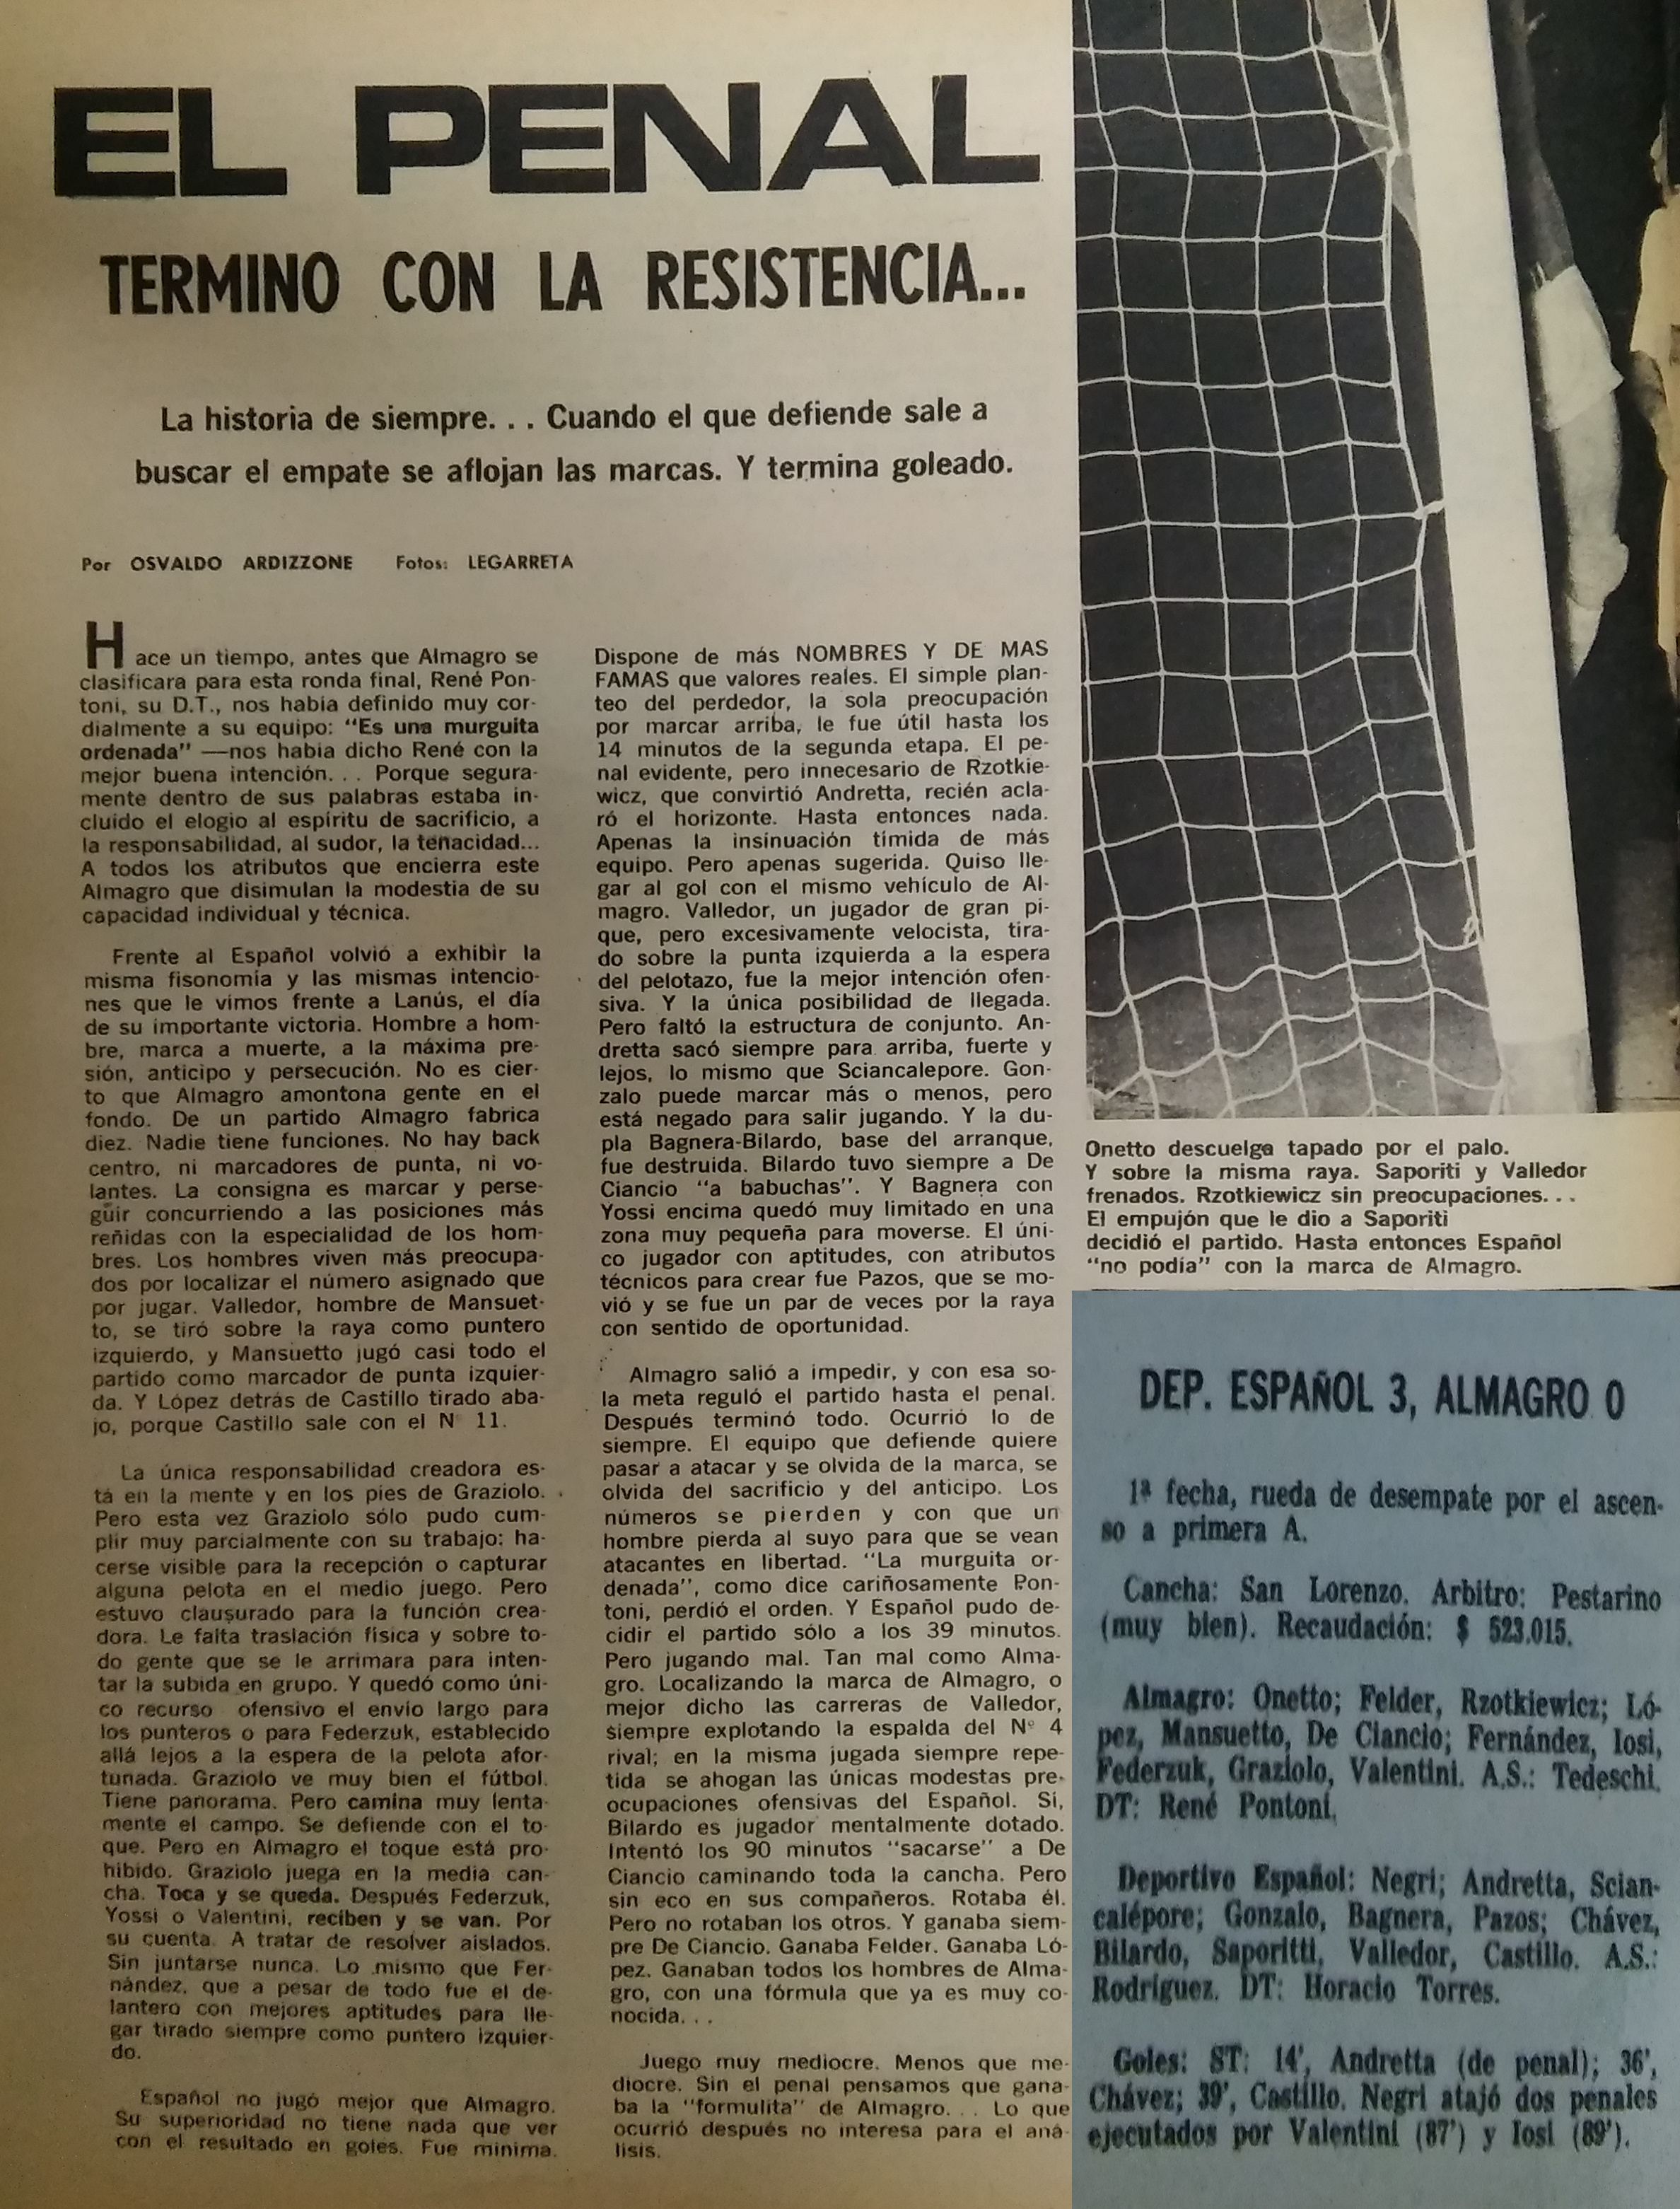 1964-almagro-vs-dep-espanol-torneo-2do-ascenso